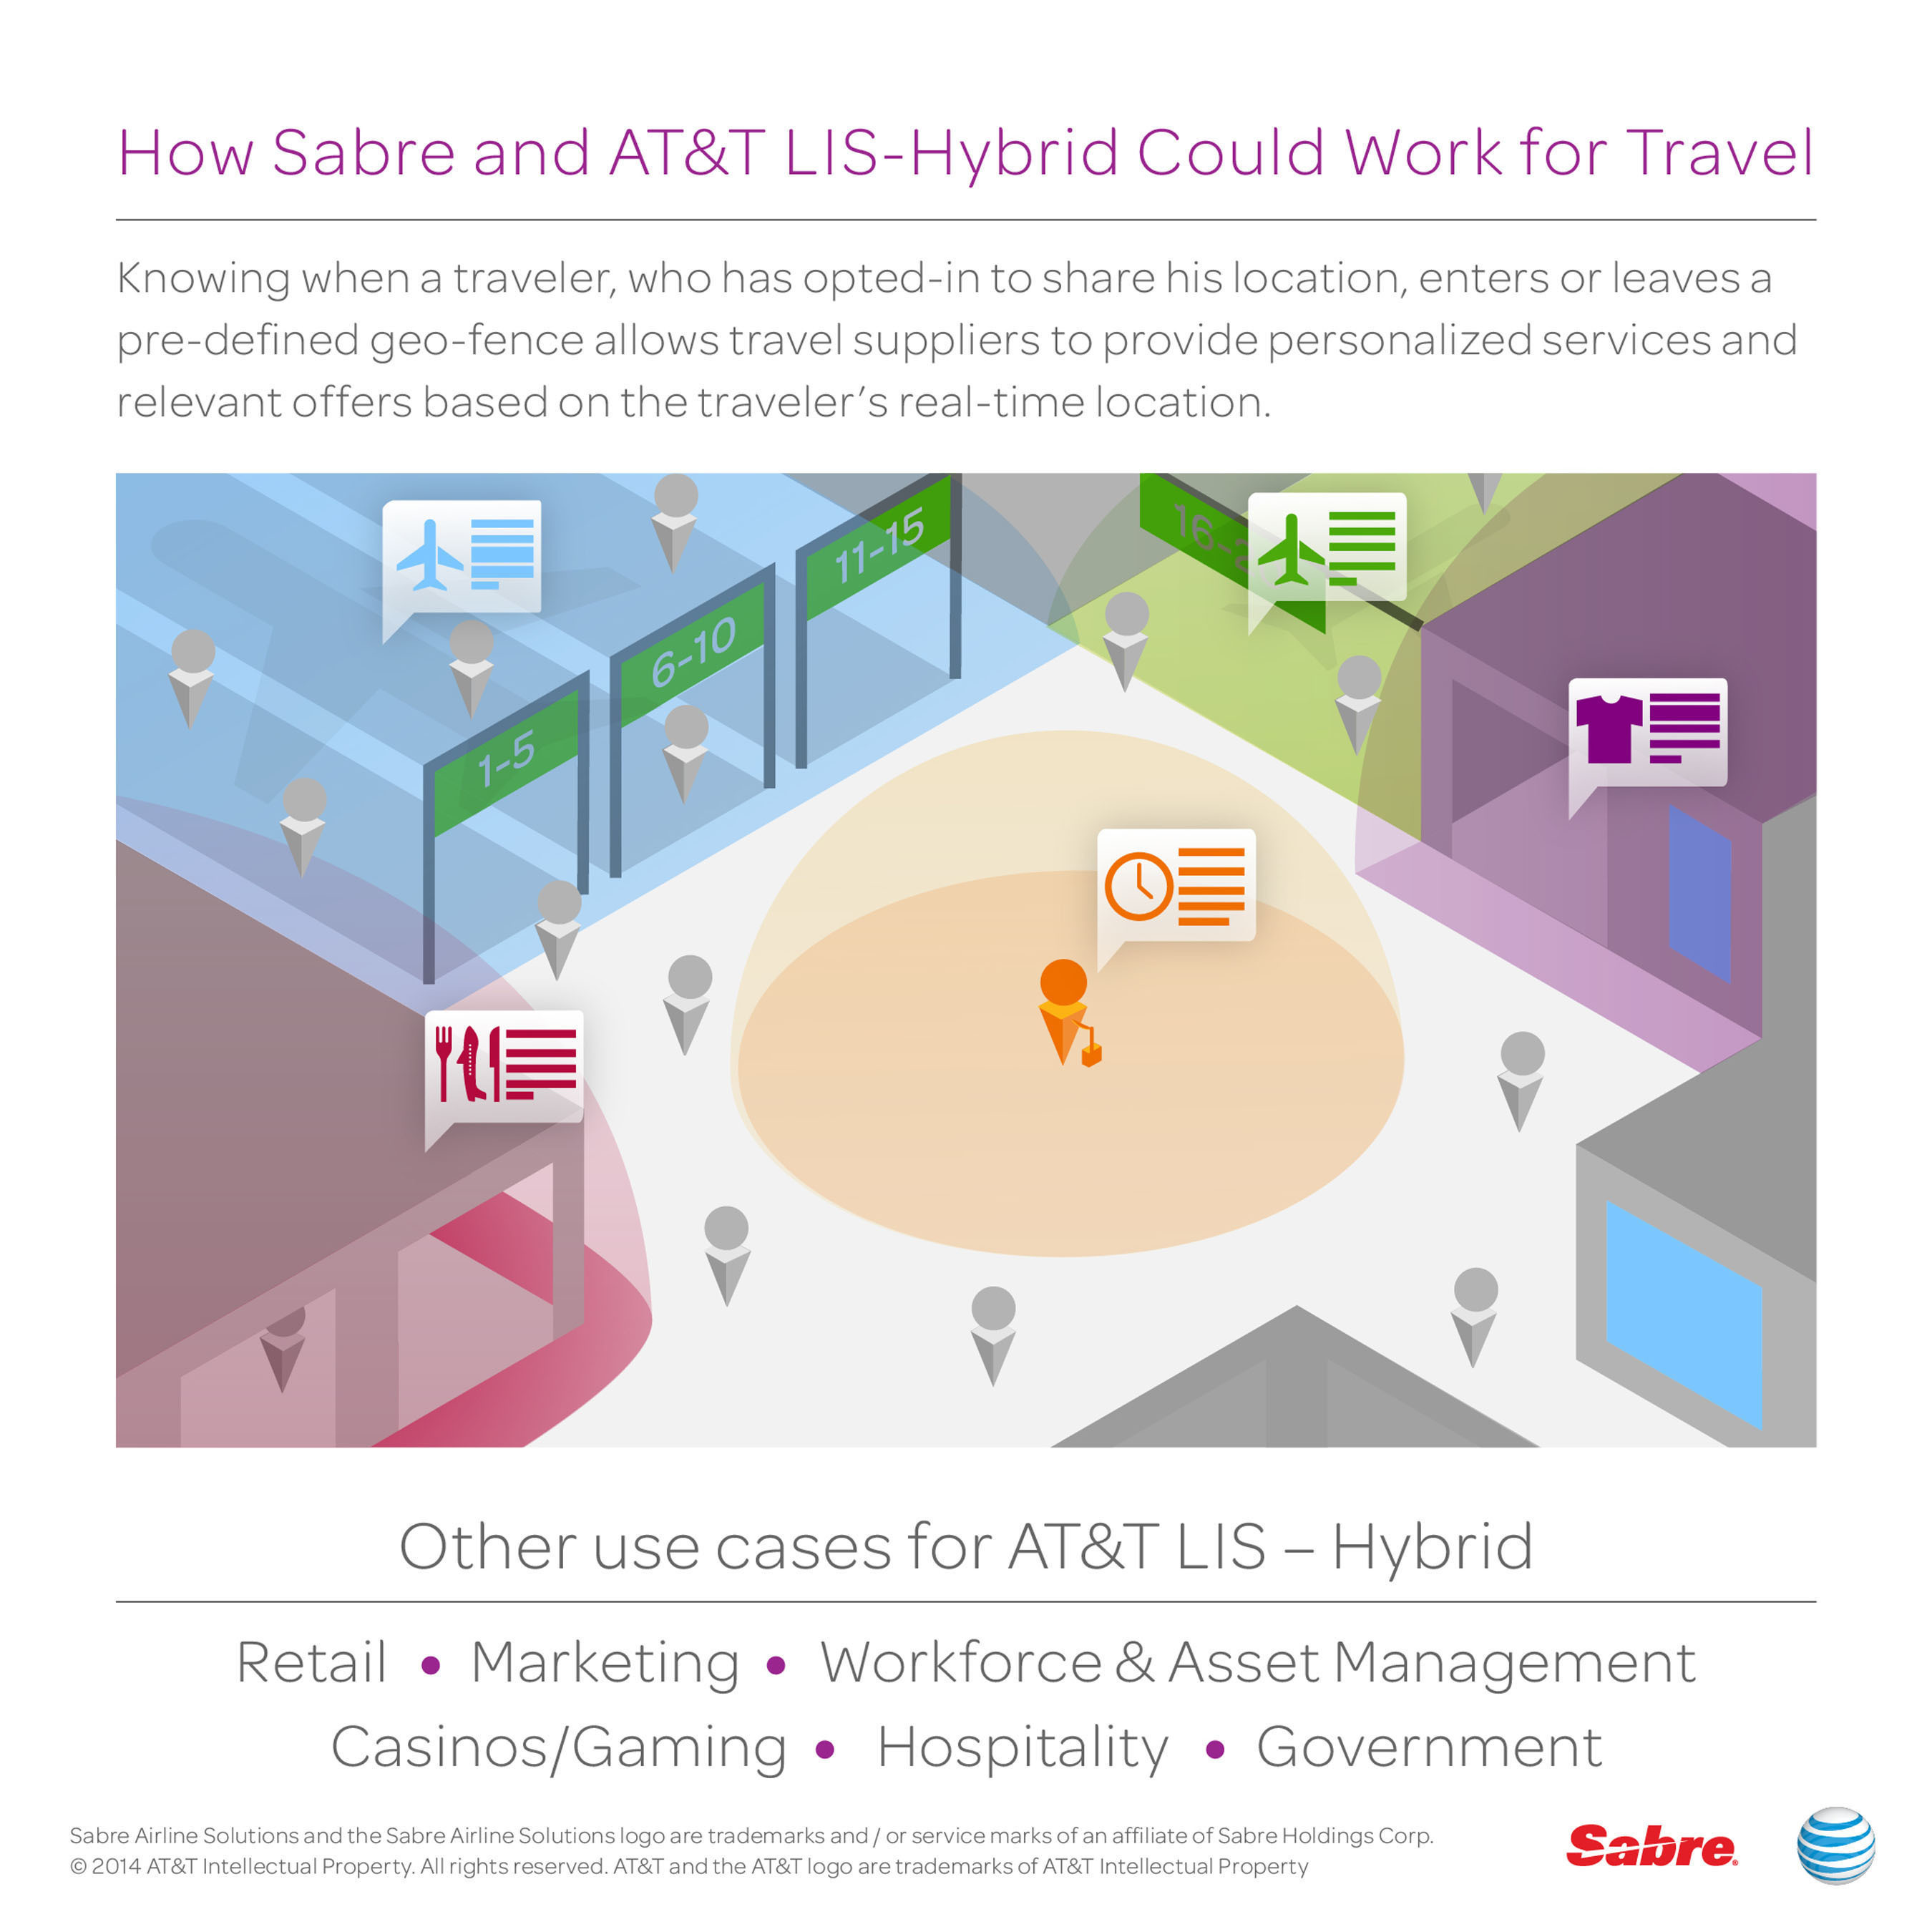 Travel technology firm, Sabre and AT&T explore how new mobile services and geo-fencing technology could personalize air travel.  (PRNewsFoto/Sabre)